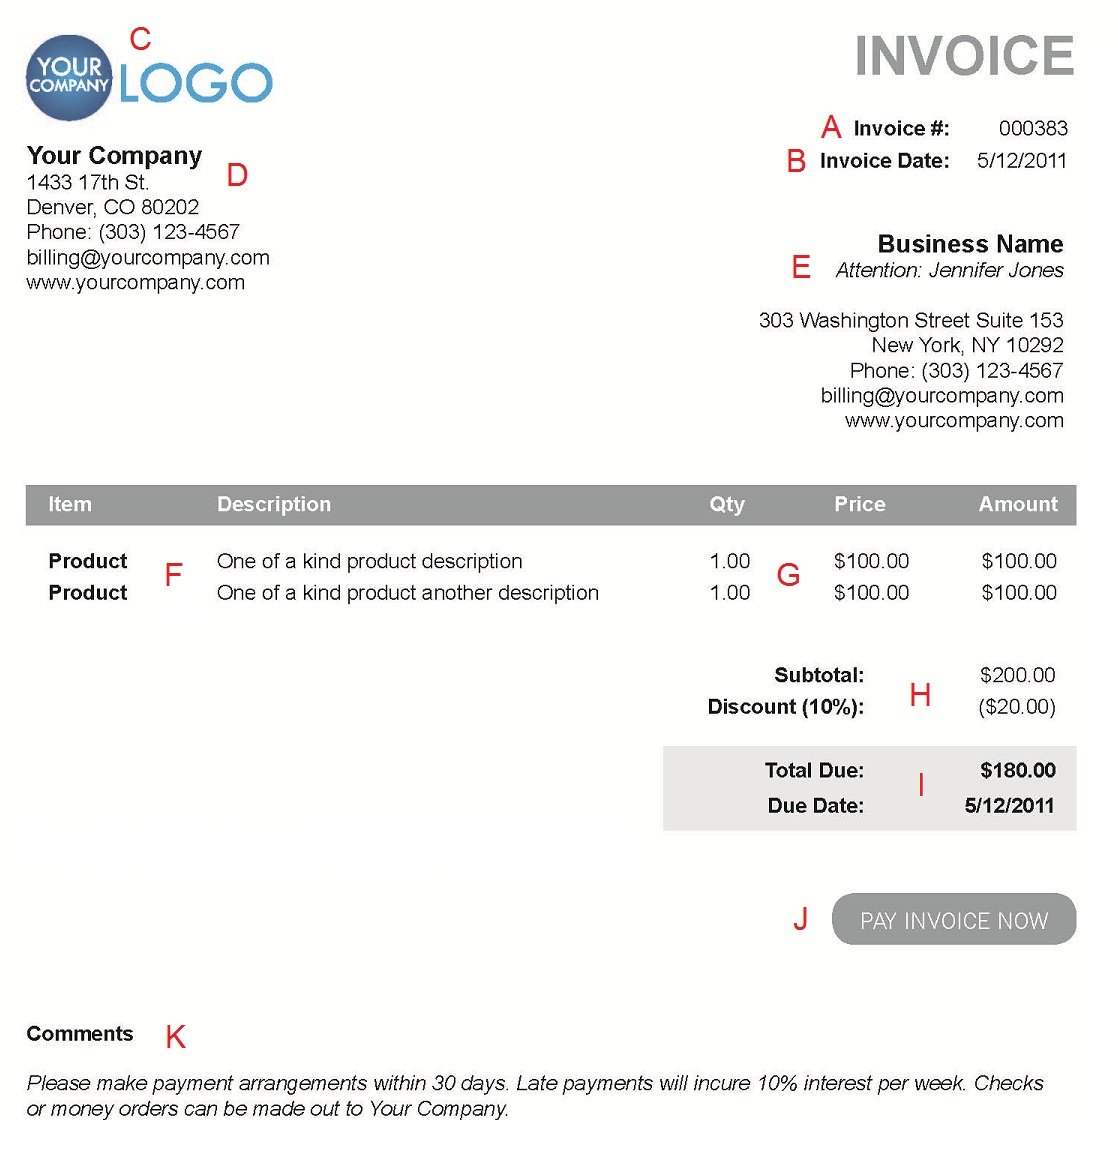 Usdgus  Terrific The  Different Sections Of An Electronic Payment Invoice With Handsome A  With Attractive Zoho Invoice  Also Company Invoice Template Word In Addition Kia Optima Invoice Price And Invoice Requirements Australia As Well As Photographers Invoice Template Additionally Invoice Expenses From Paysimplecom With Usdgus  Handsome The  Different Sections Of An Electronic Payment Invoice With Attractive A  And Terrific Zoho Invoice  Also Company Invoice Template Word In Addition Kia Optima Invoice Price From Paysimplecom